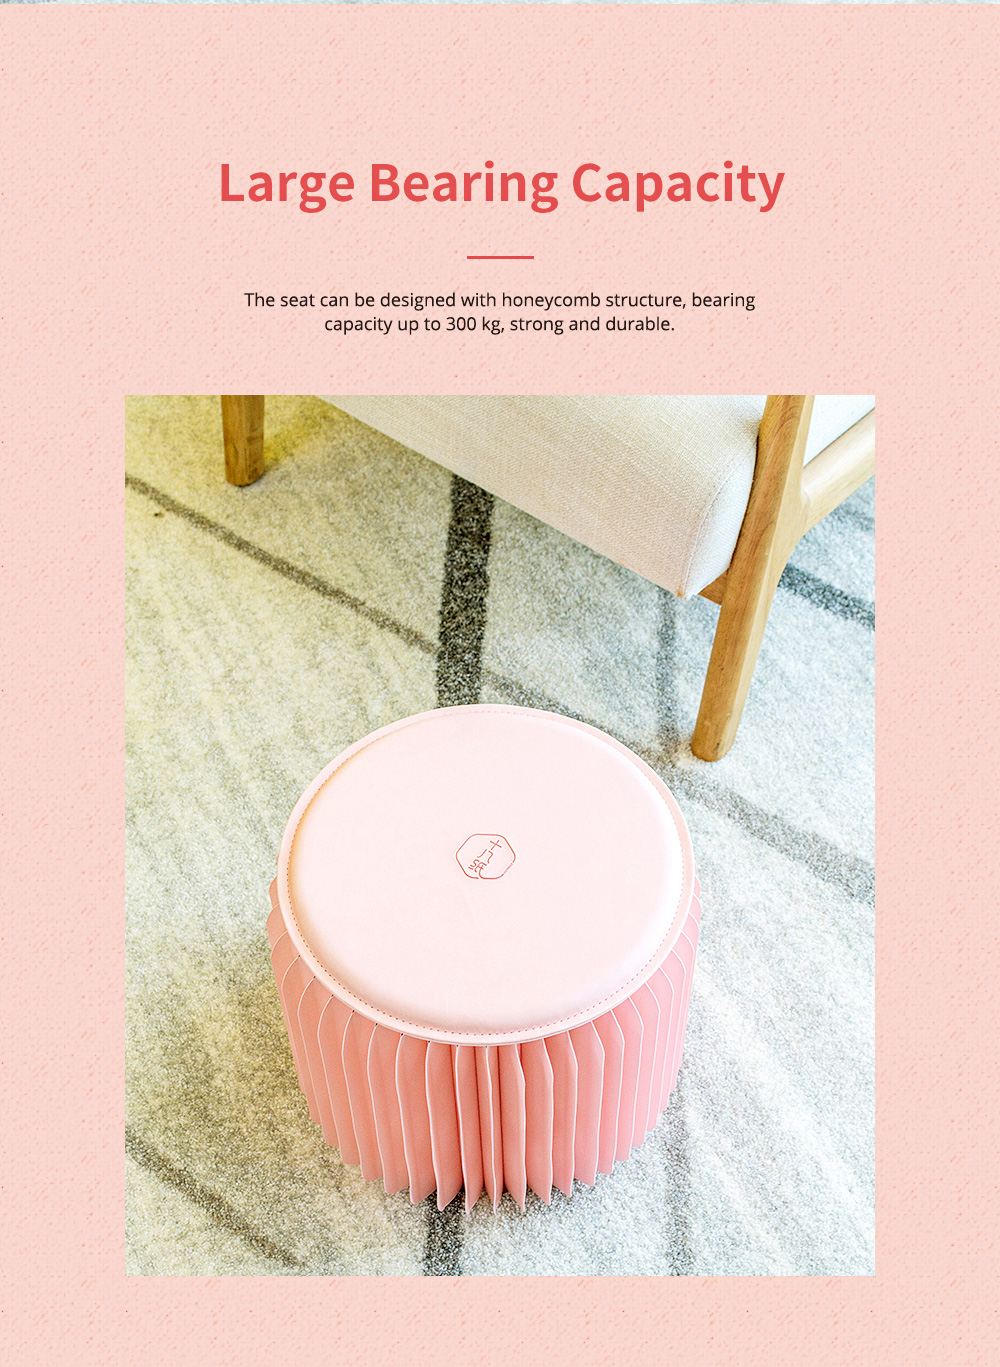 Waterproof Kraft Stool for Ladies Foldable Portable Kraft Stool with High Load Bearing Capacity Coral Pink 3